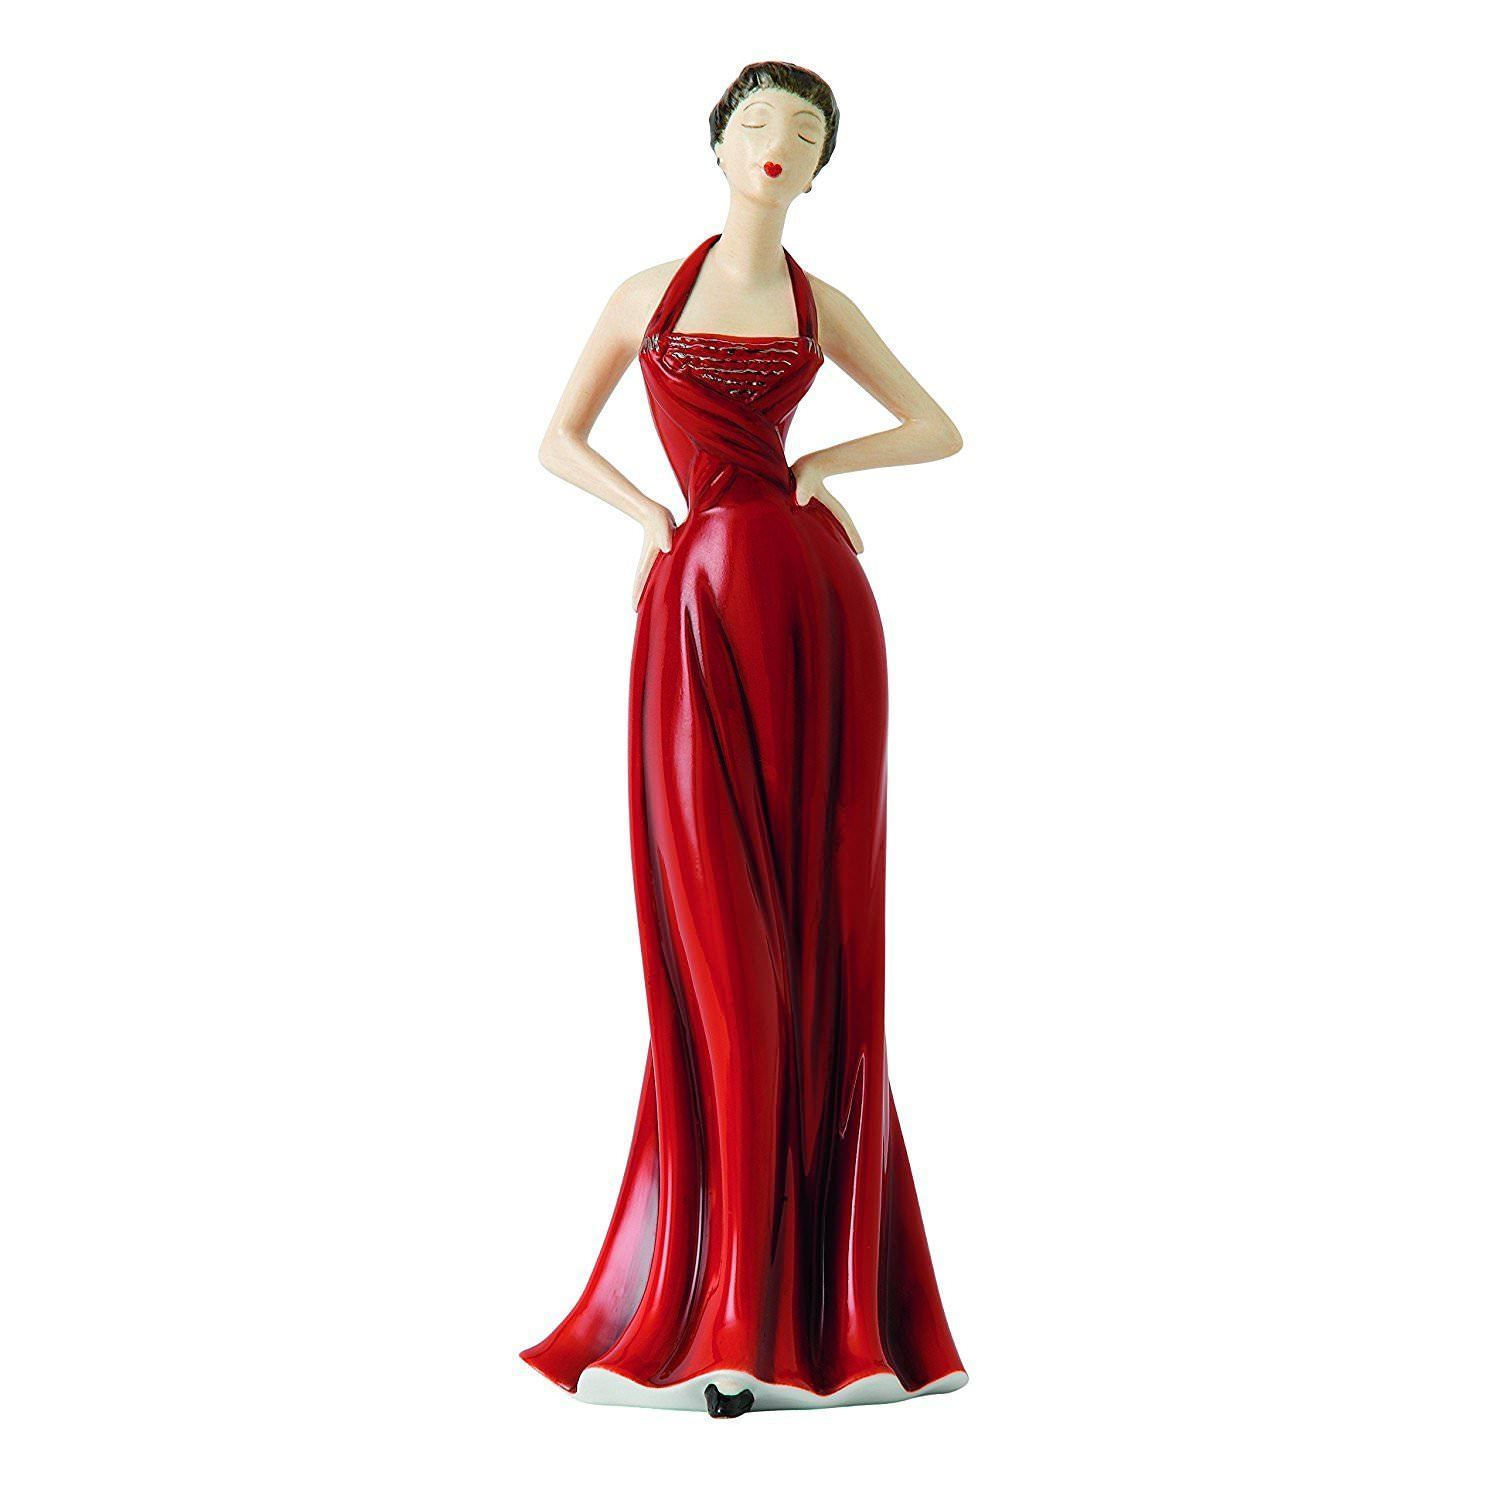 Royal Doulton Yolande Fashion Figurine 1950's Red Ball Gown V & A Museum NEW